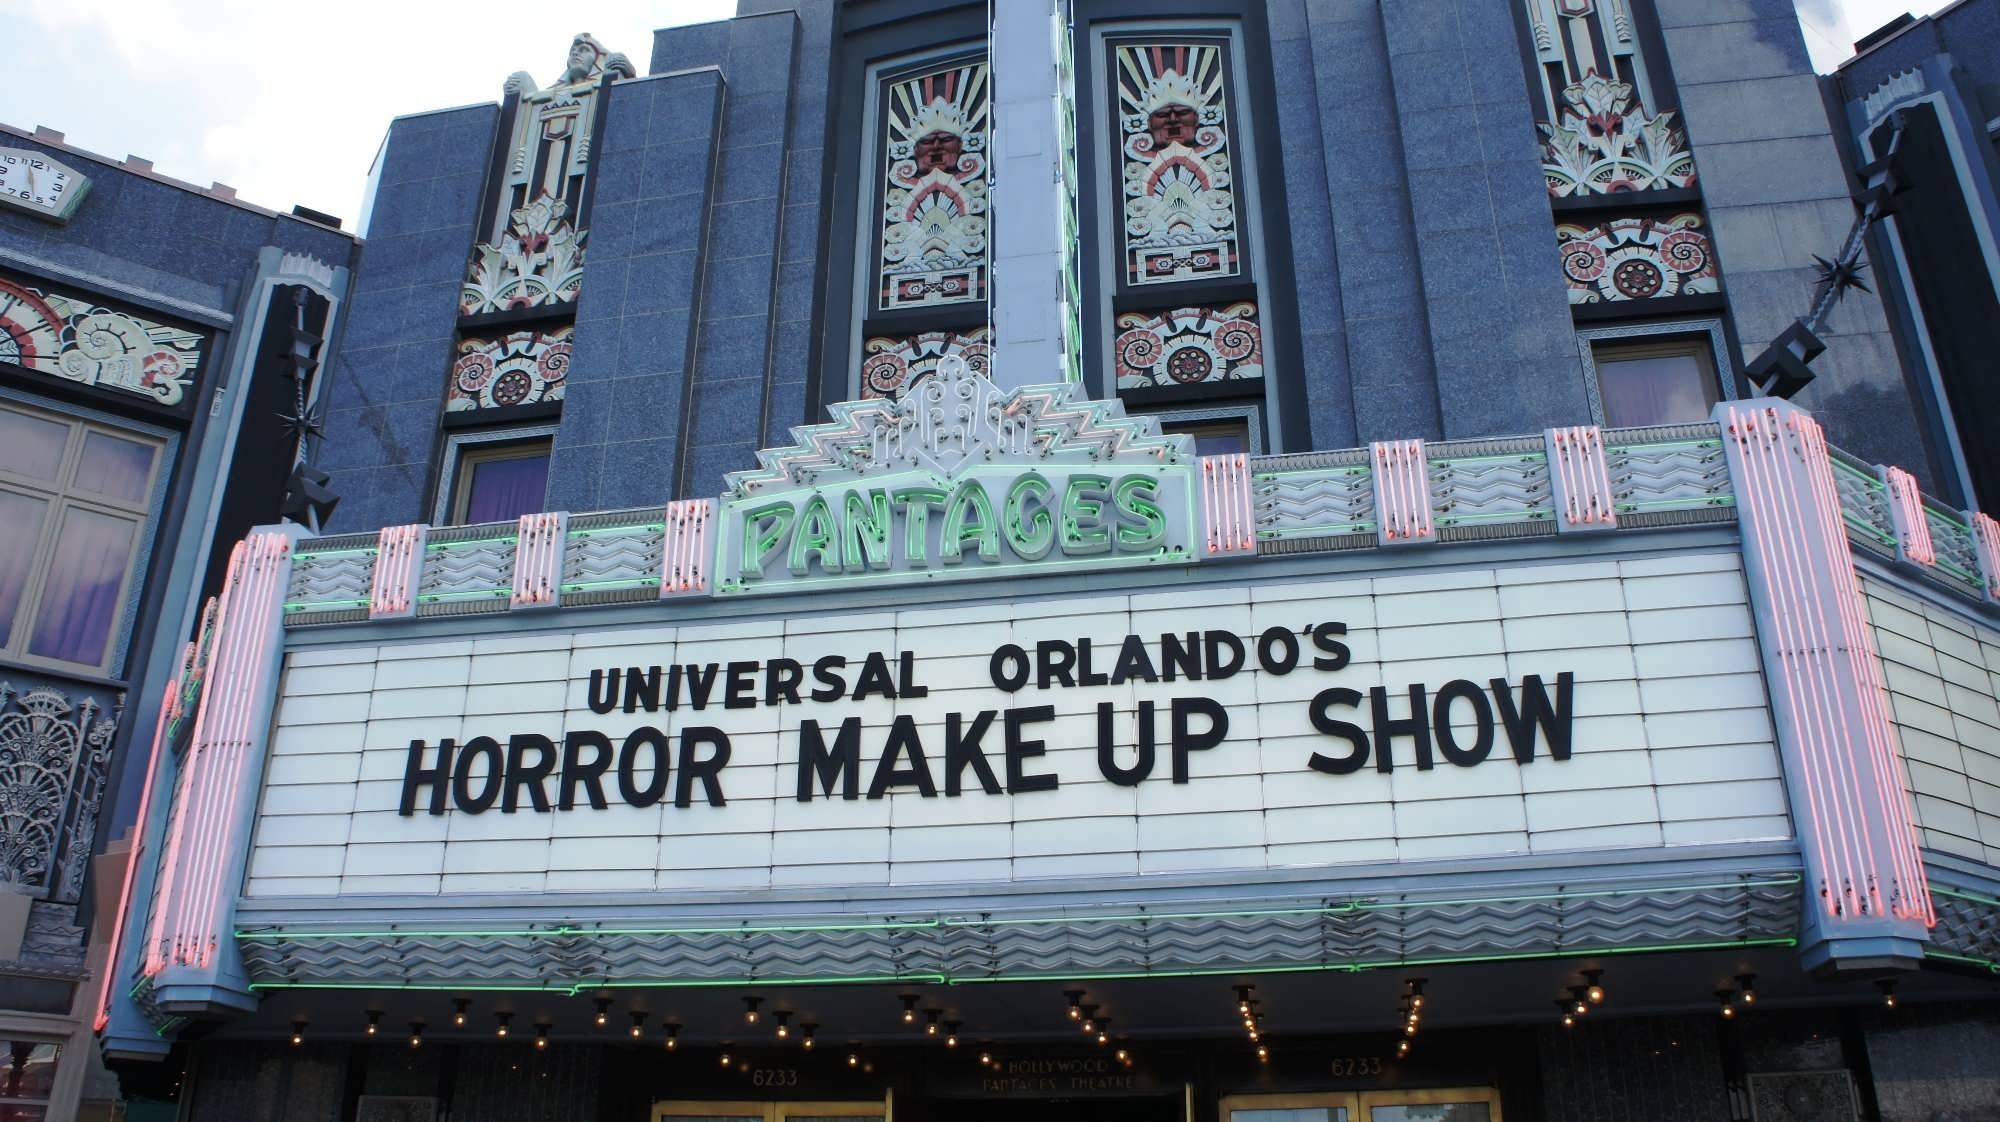 Image result for universal make up horror show